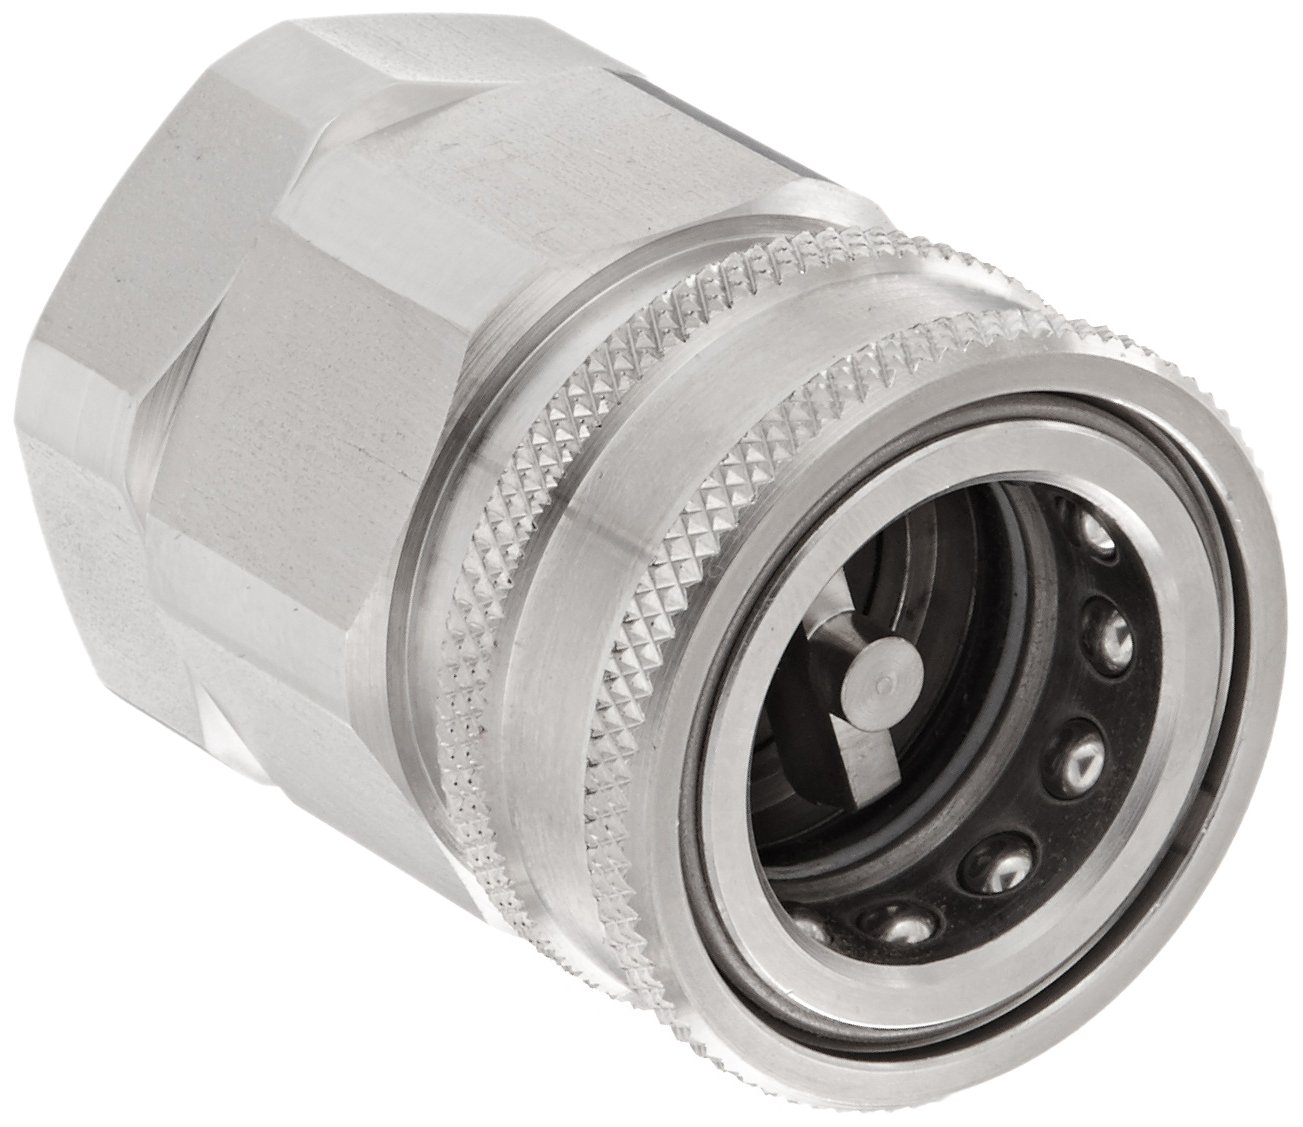 Sleeve-Lock Socket Snap-Tite SVHC16-16F Stainless Steel 316 H-Shape Quick-Disconnect Hose Coupling 1 NPSF Female x 1 Coupling Size 1 NPSF Female x 1 Coupling Size